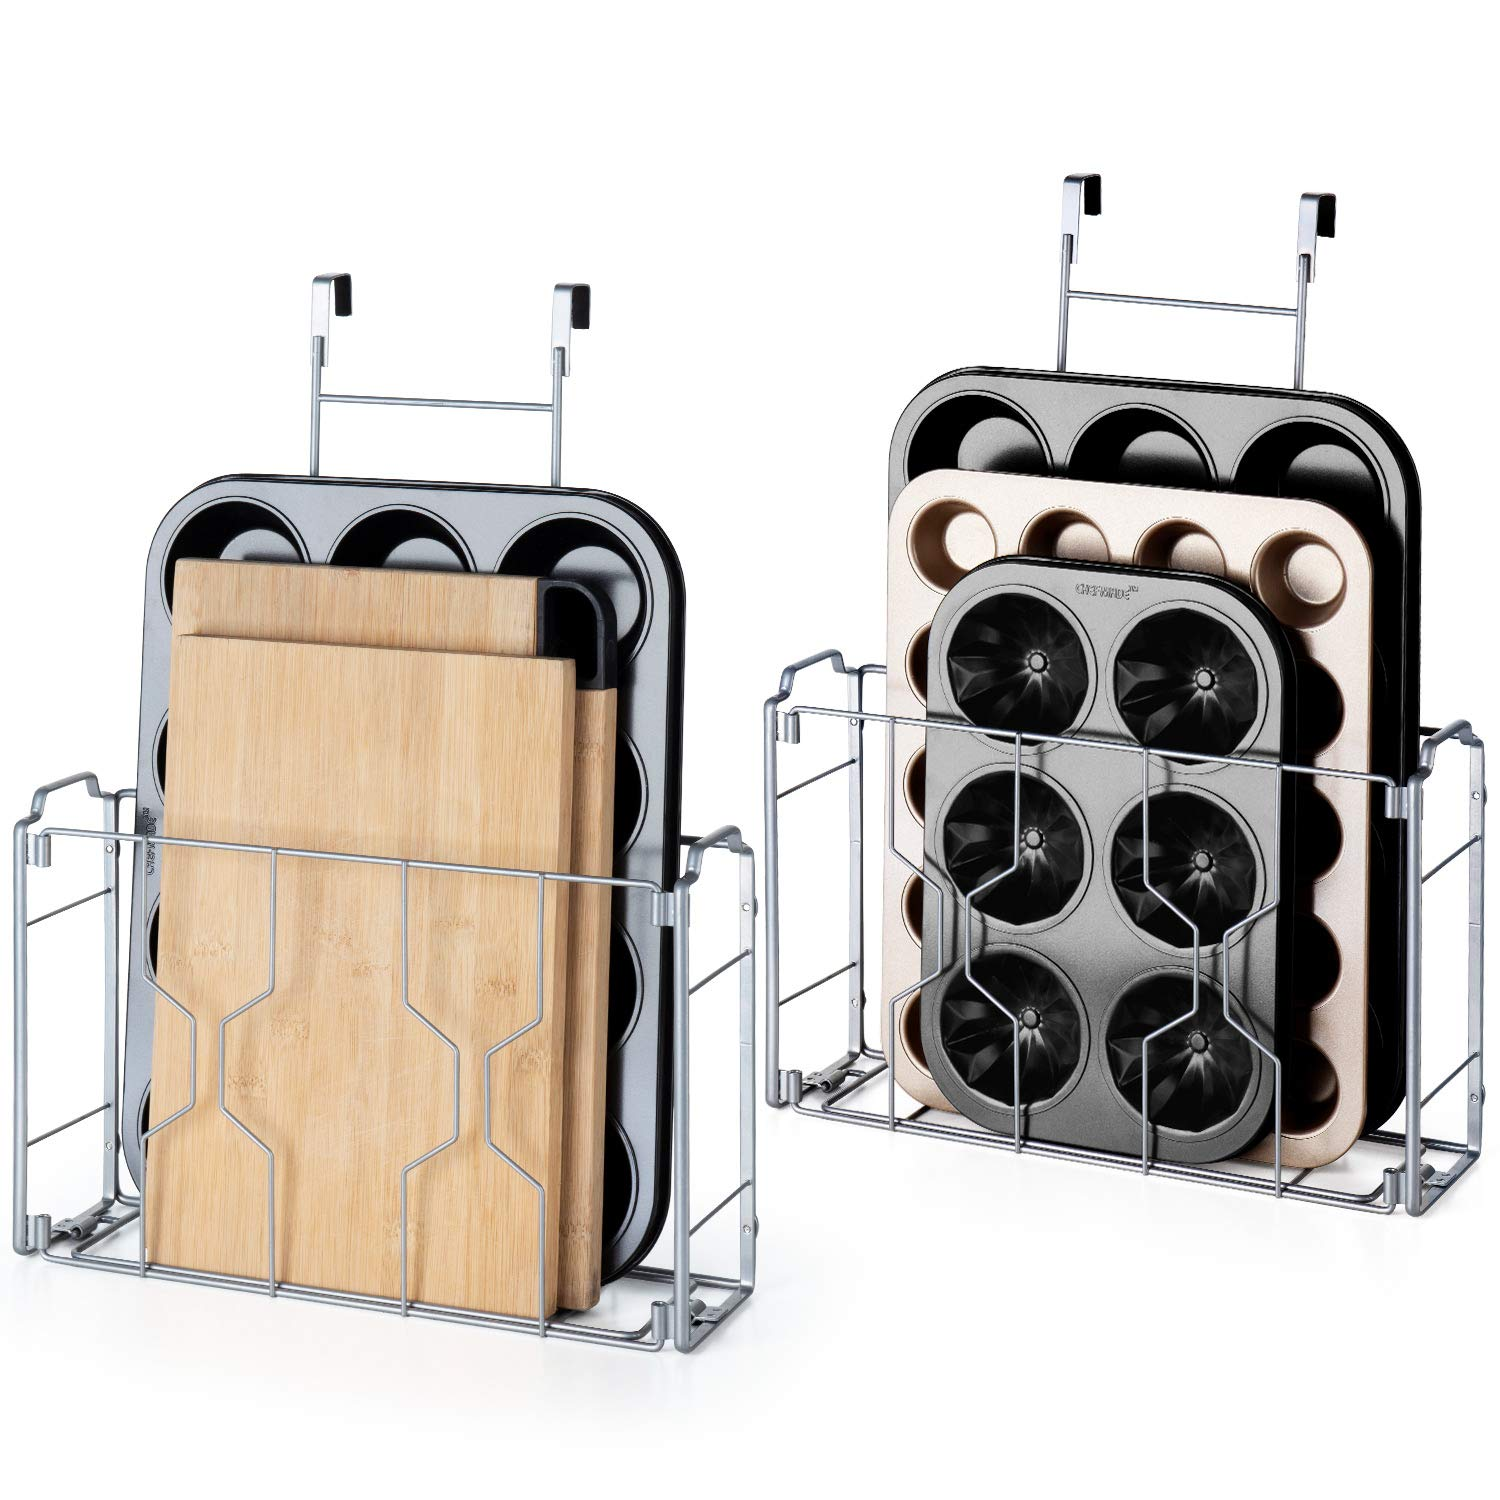 Bextsware 2 Pack Over the Door/Wall Mount Cabinet Organizer Storage Basket in Kitchen or Pantry for Cutting Board, Aluminum Foil, Plastic Wrap, Mesh Silver by Bextsware